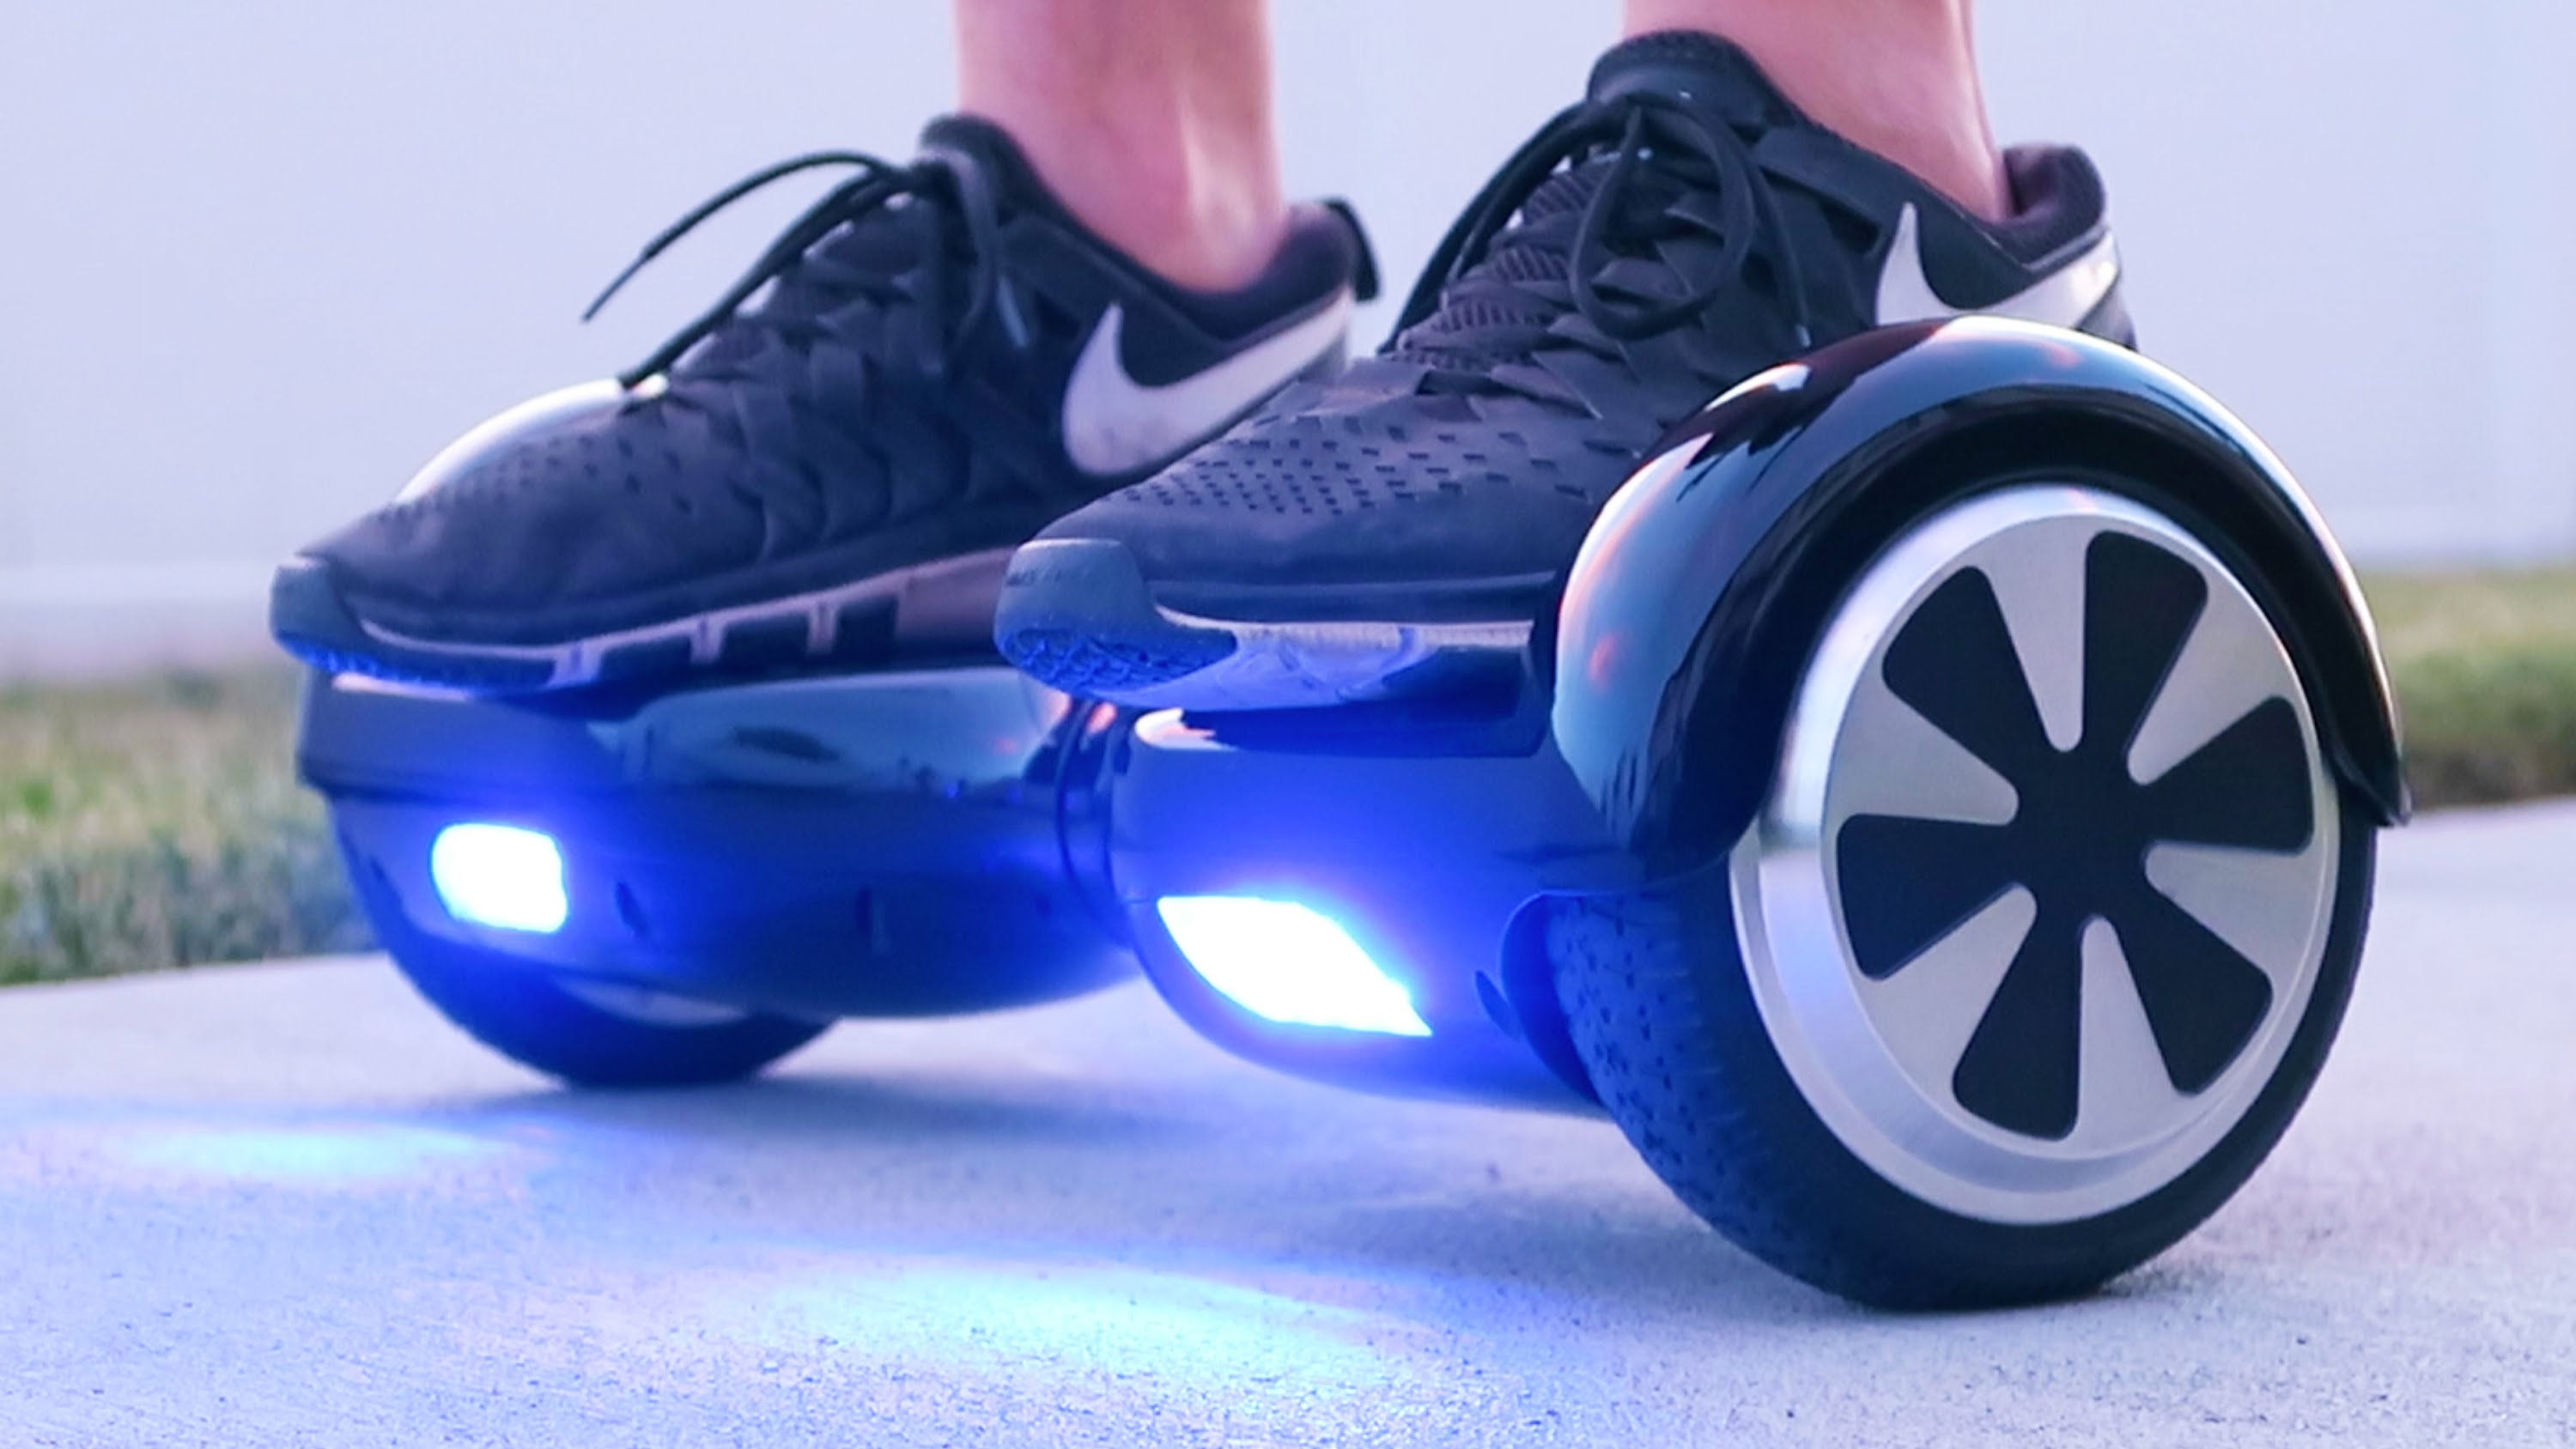 Retiran hoverboards del mercado por no cumplir con requisitos de seguridad.